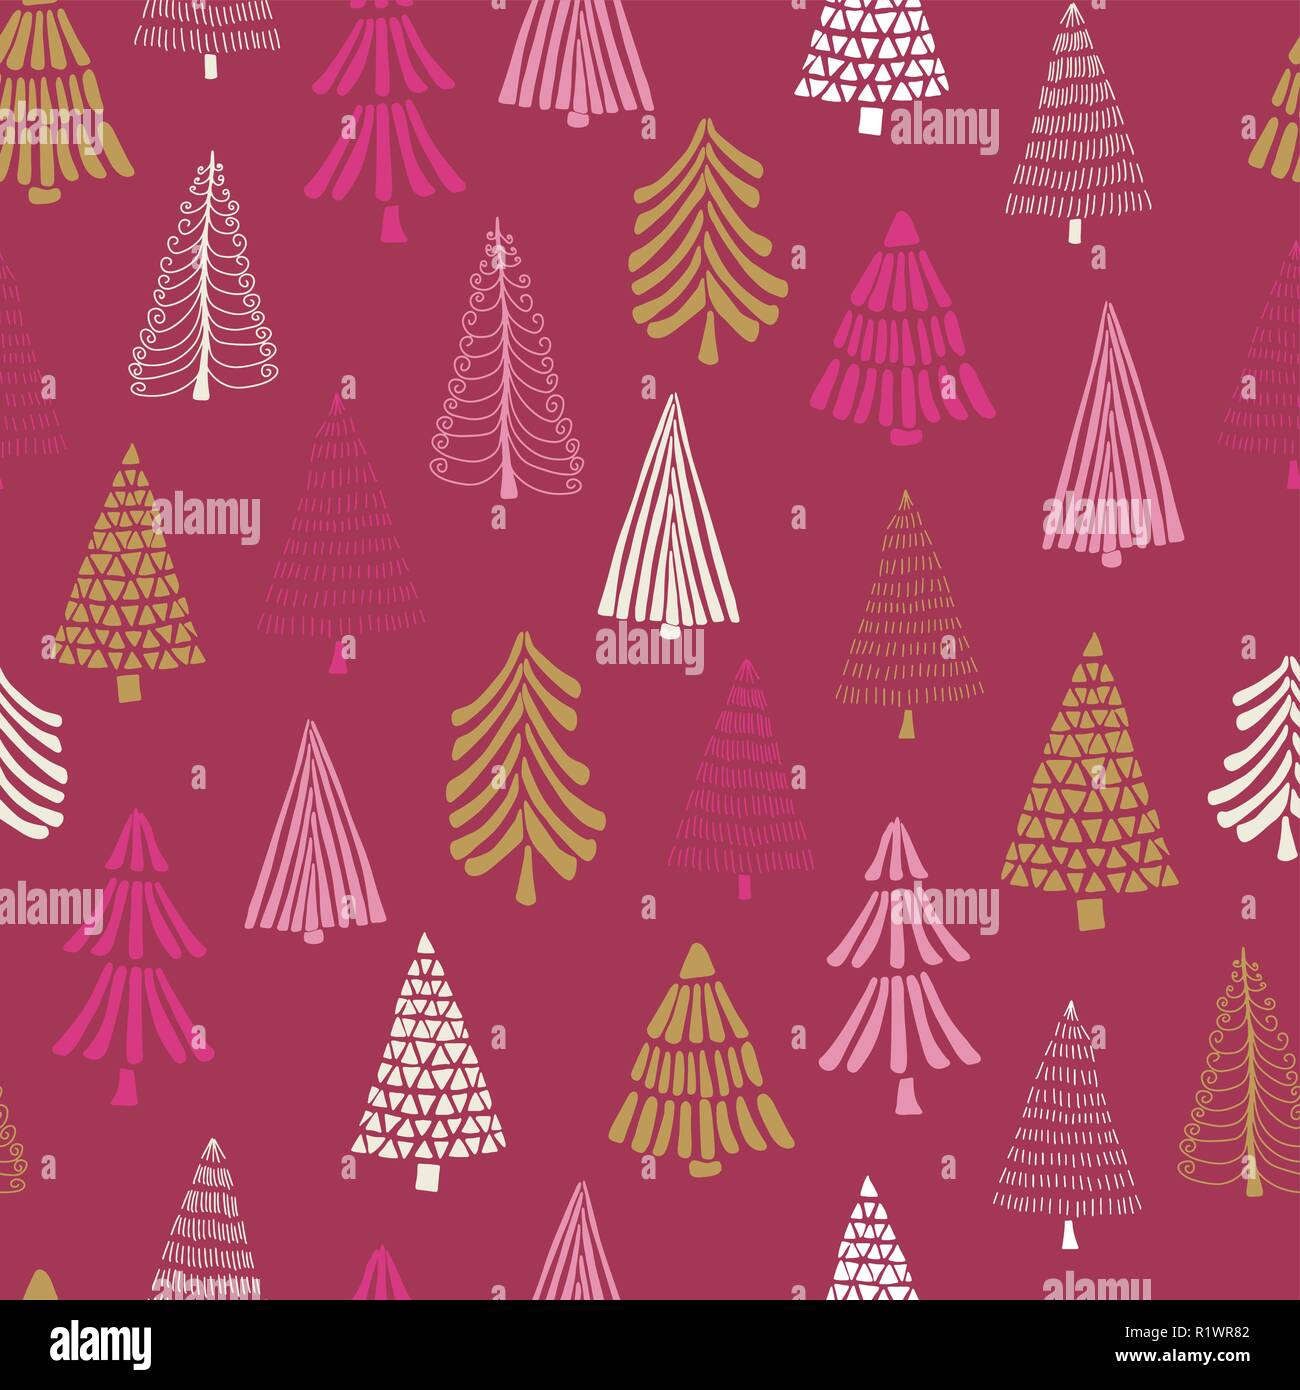 Modern Doodle Christmas Trees Seamless Vector Background Pink Gold